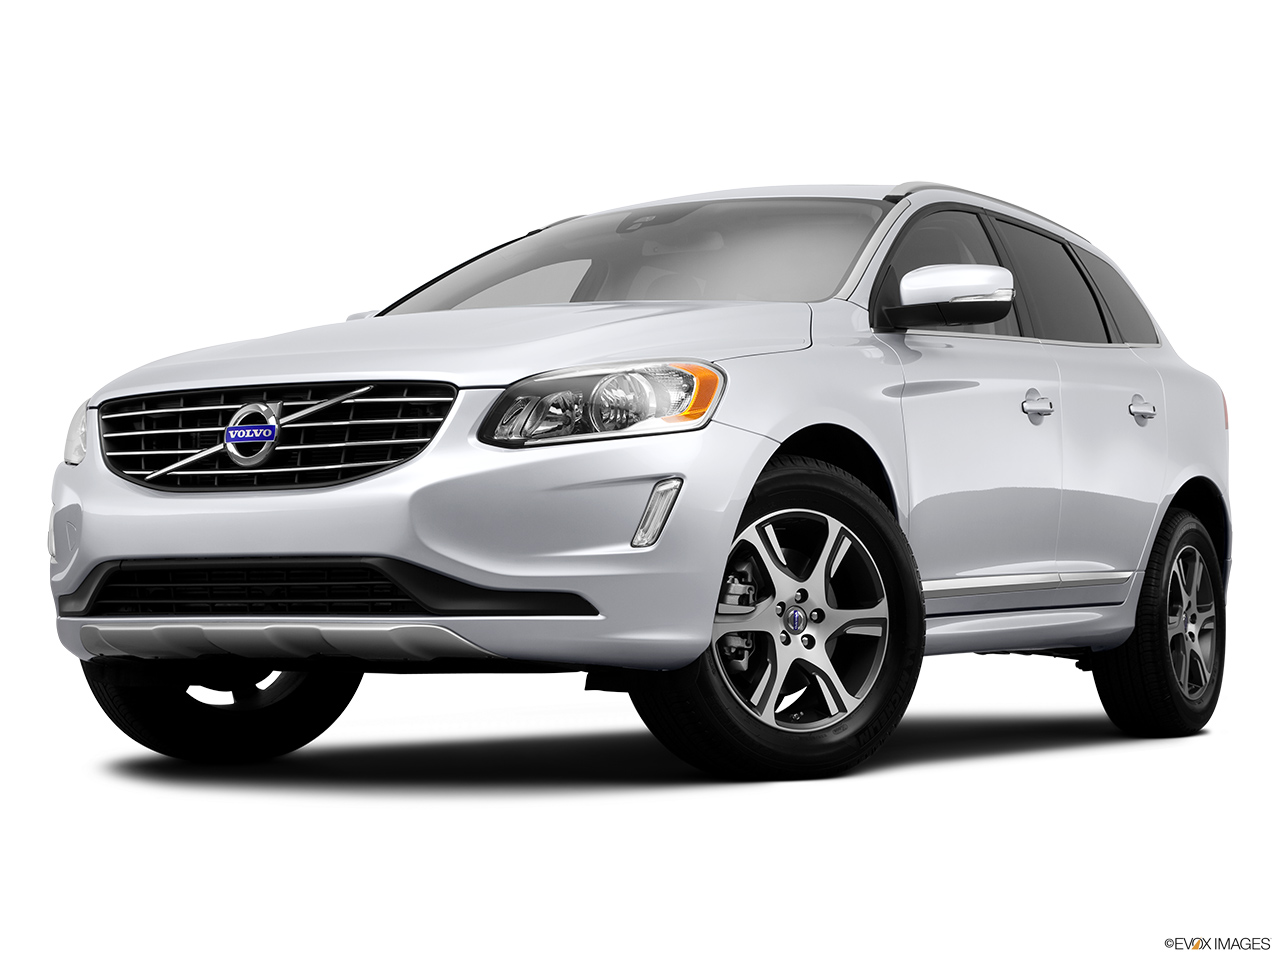 2014 Volvo XC60 T6 AWD Premier Plus Front angle view, low wide perspective.